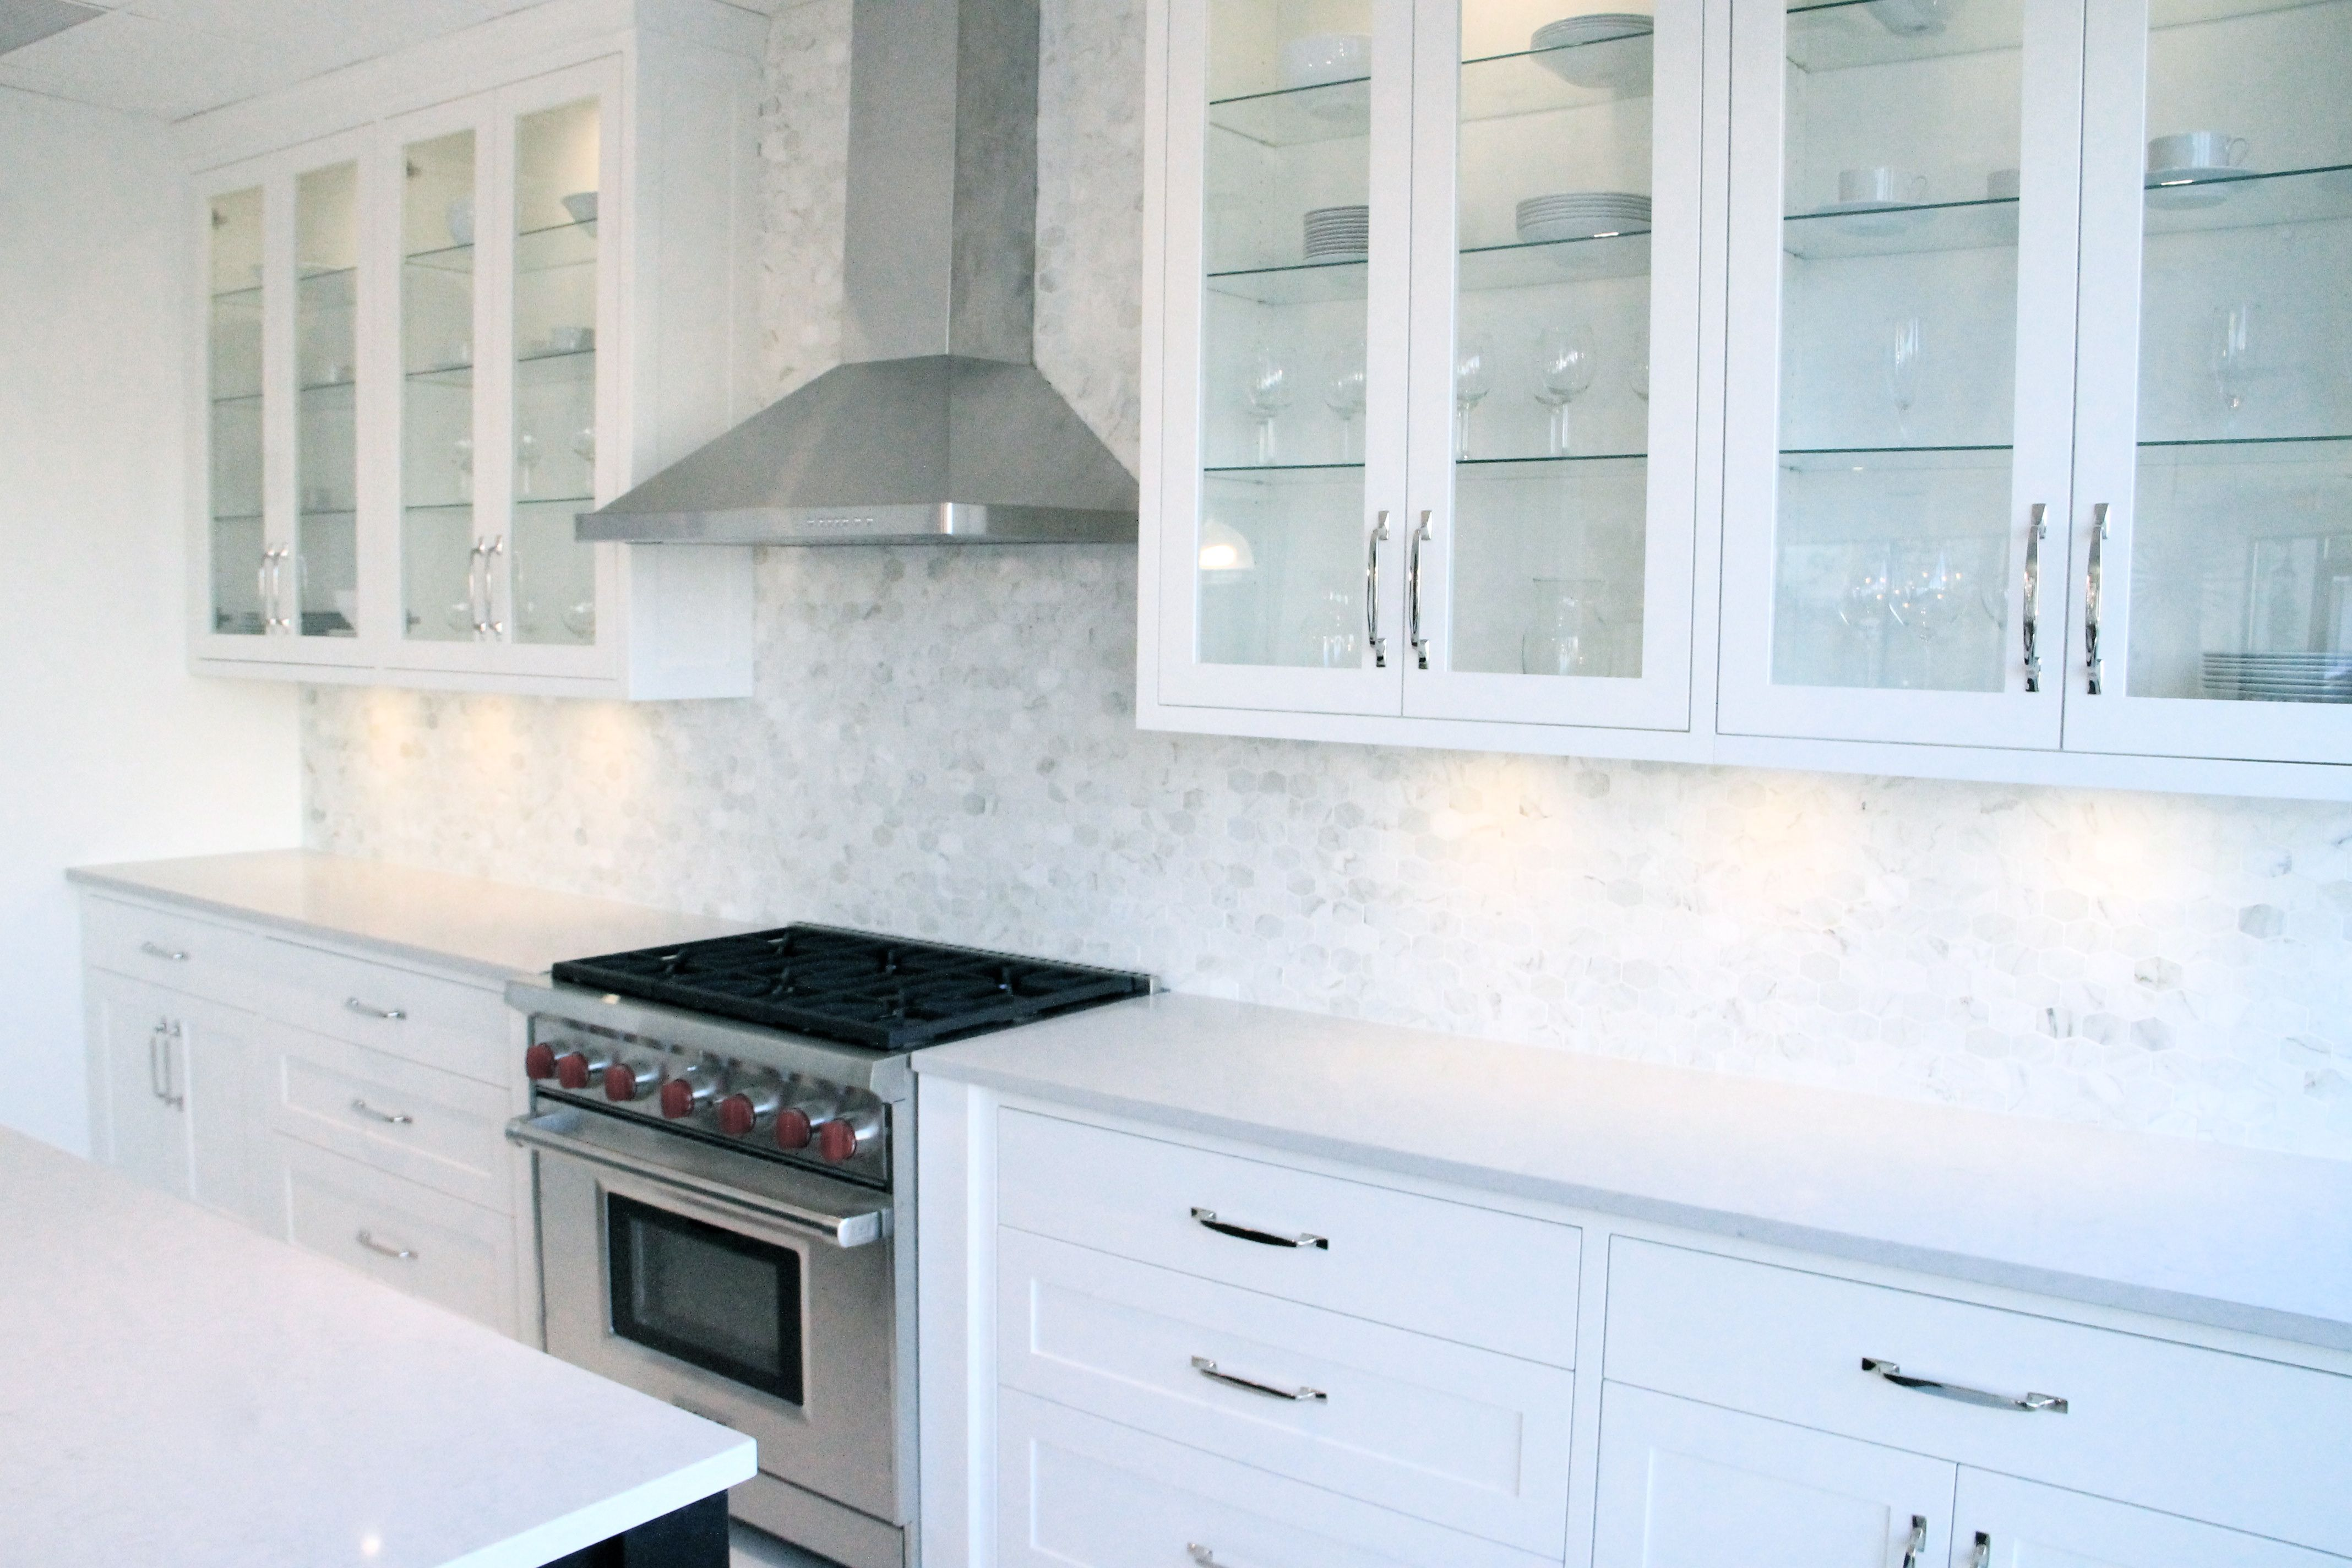 pics of kitchens with white cabinets img 9096 jpg 4272 215 2848 kitchen hexagon 9096